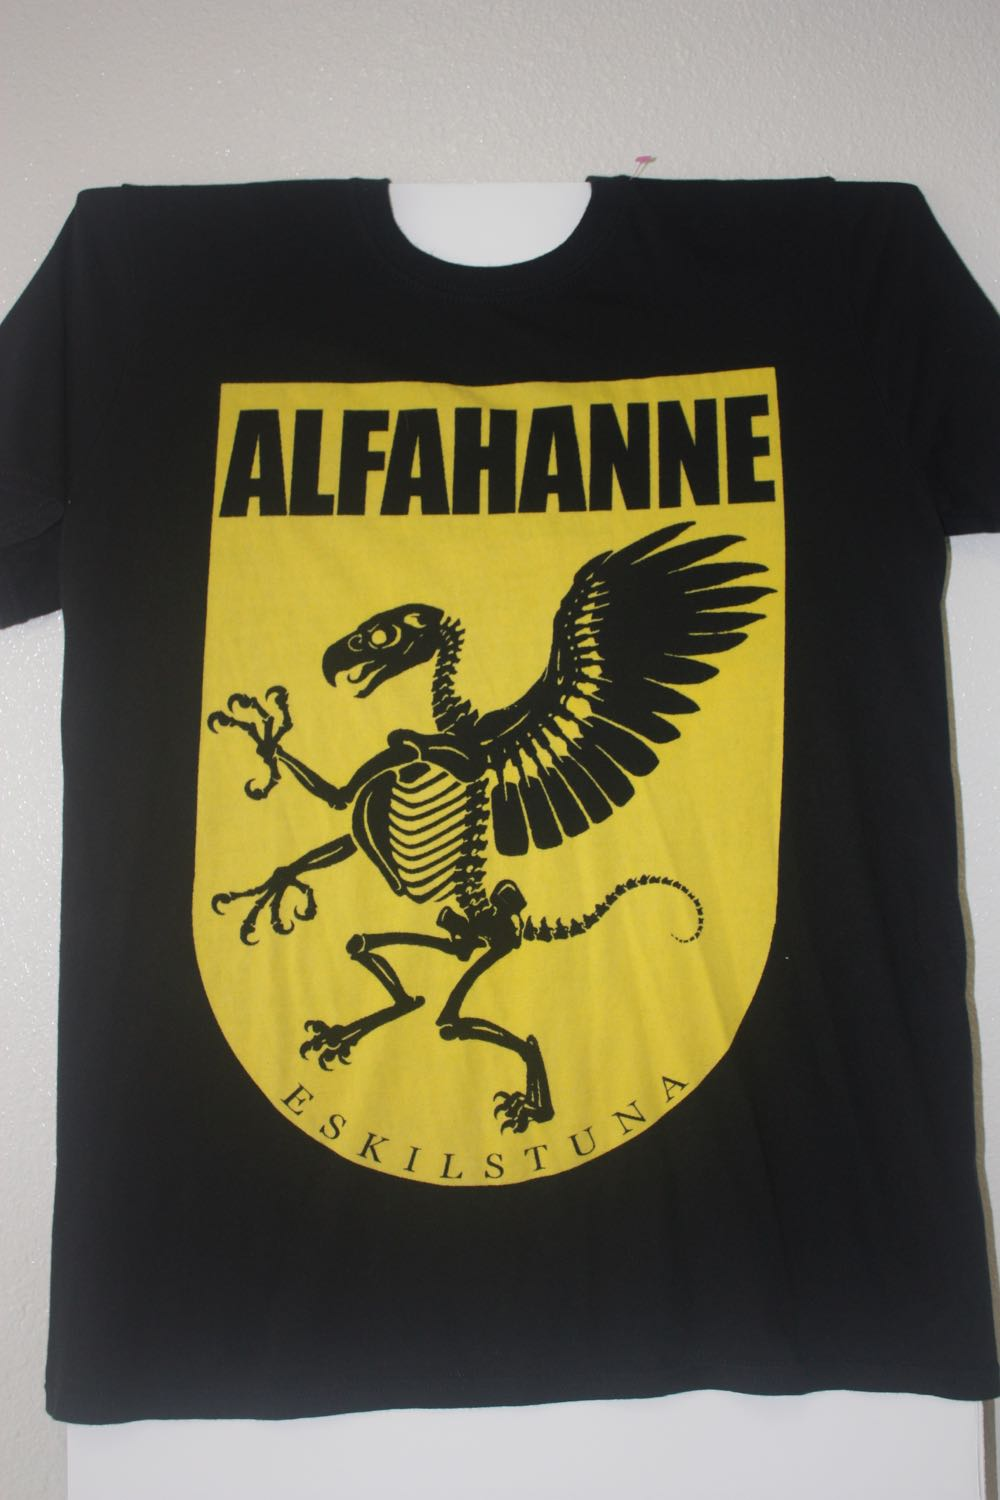 AlfaHanne Bird Skeleton Death Metal Tee